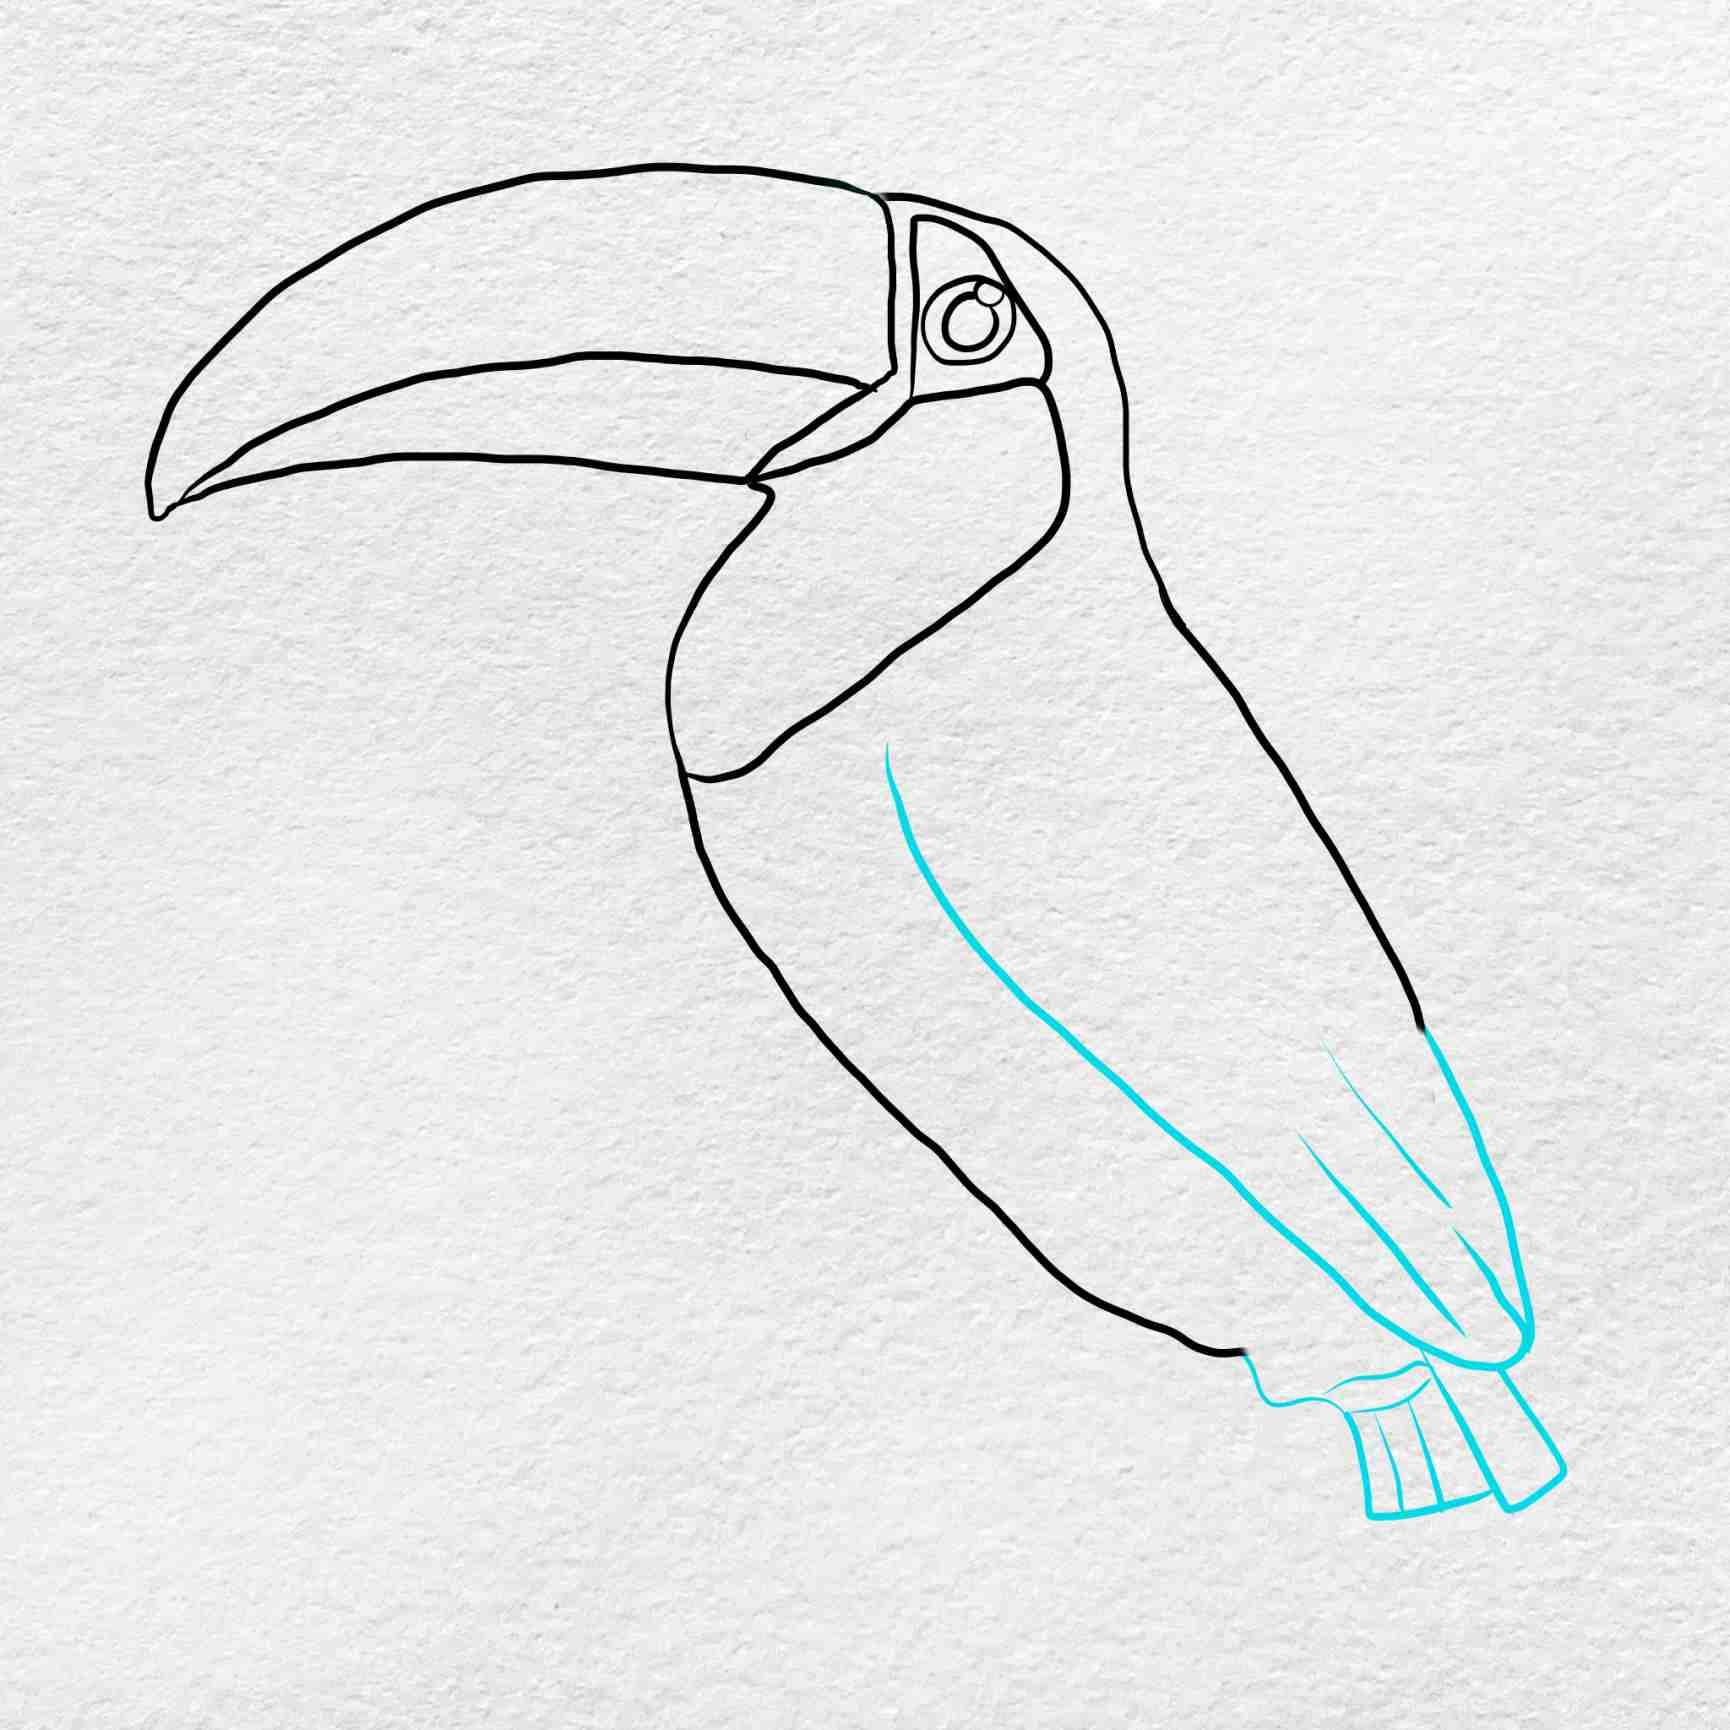 How To Draw A Toucan: Step 4